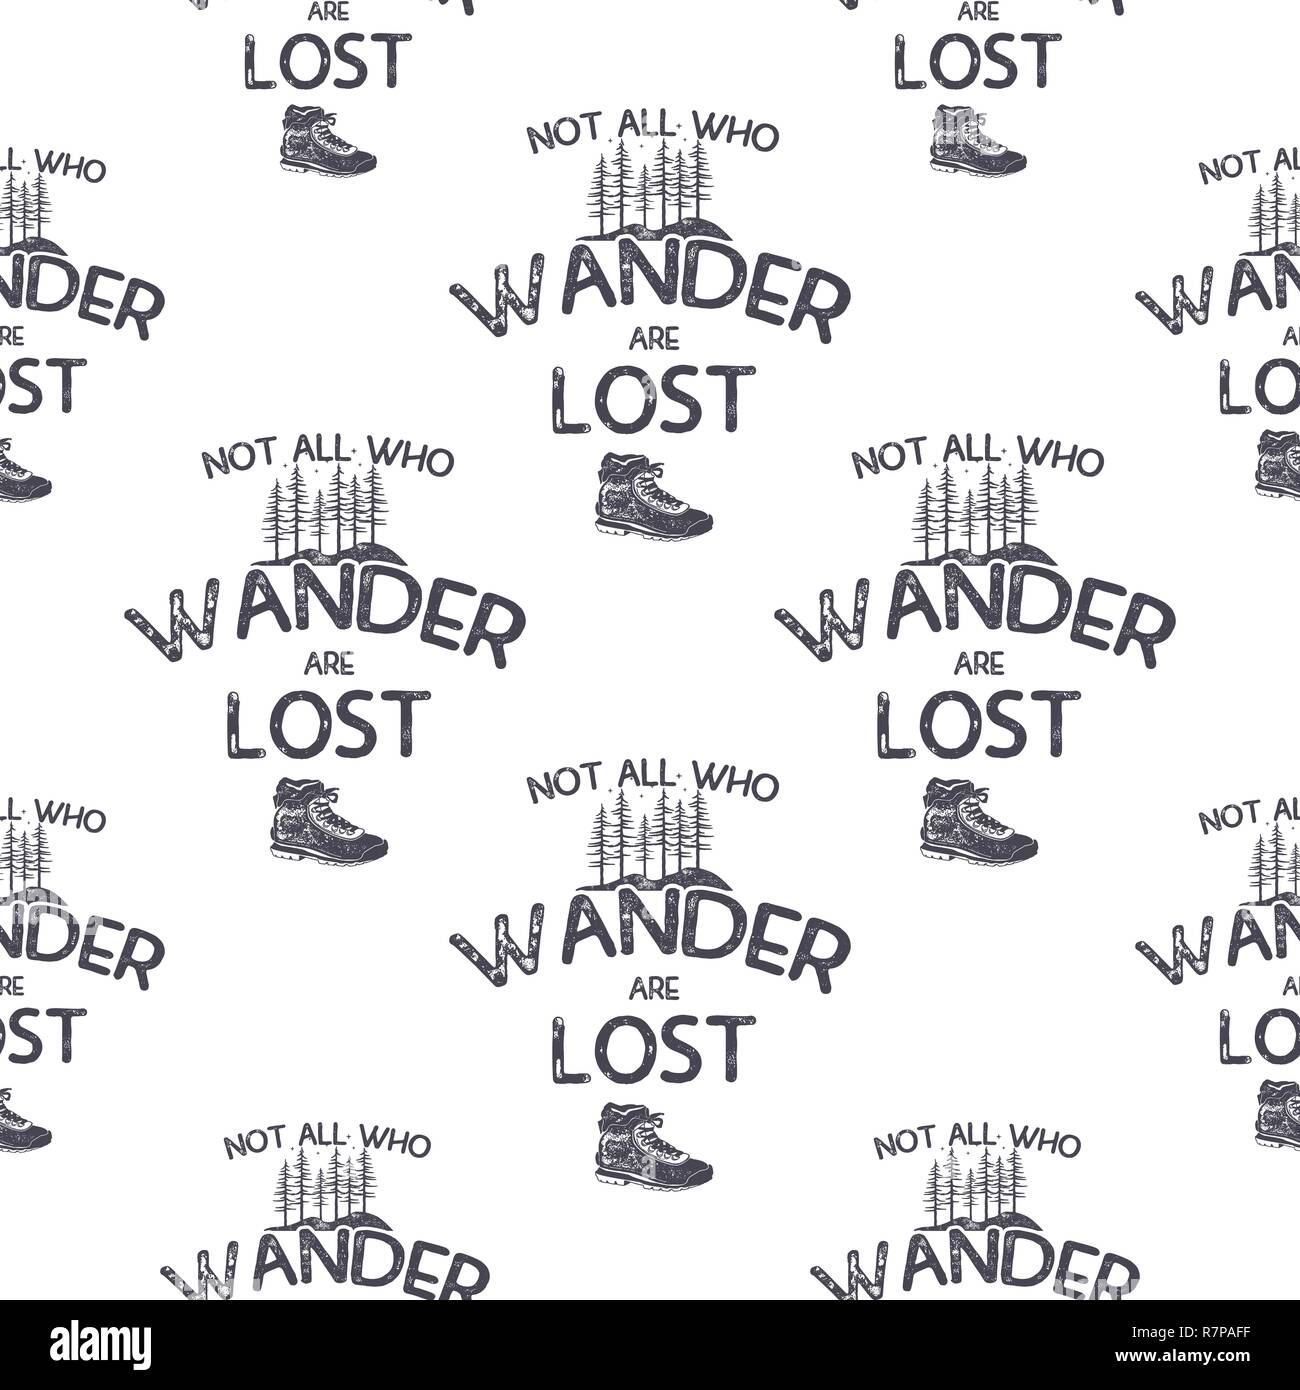 Wanderlust adventure seamless pattern with trees and hiking boot. Not all who wander are lost quote. Silhouette distressed design. Stock vector camping wallpaper isolated on white background - Stock Image